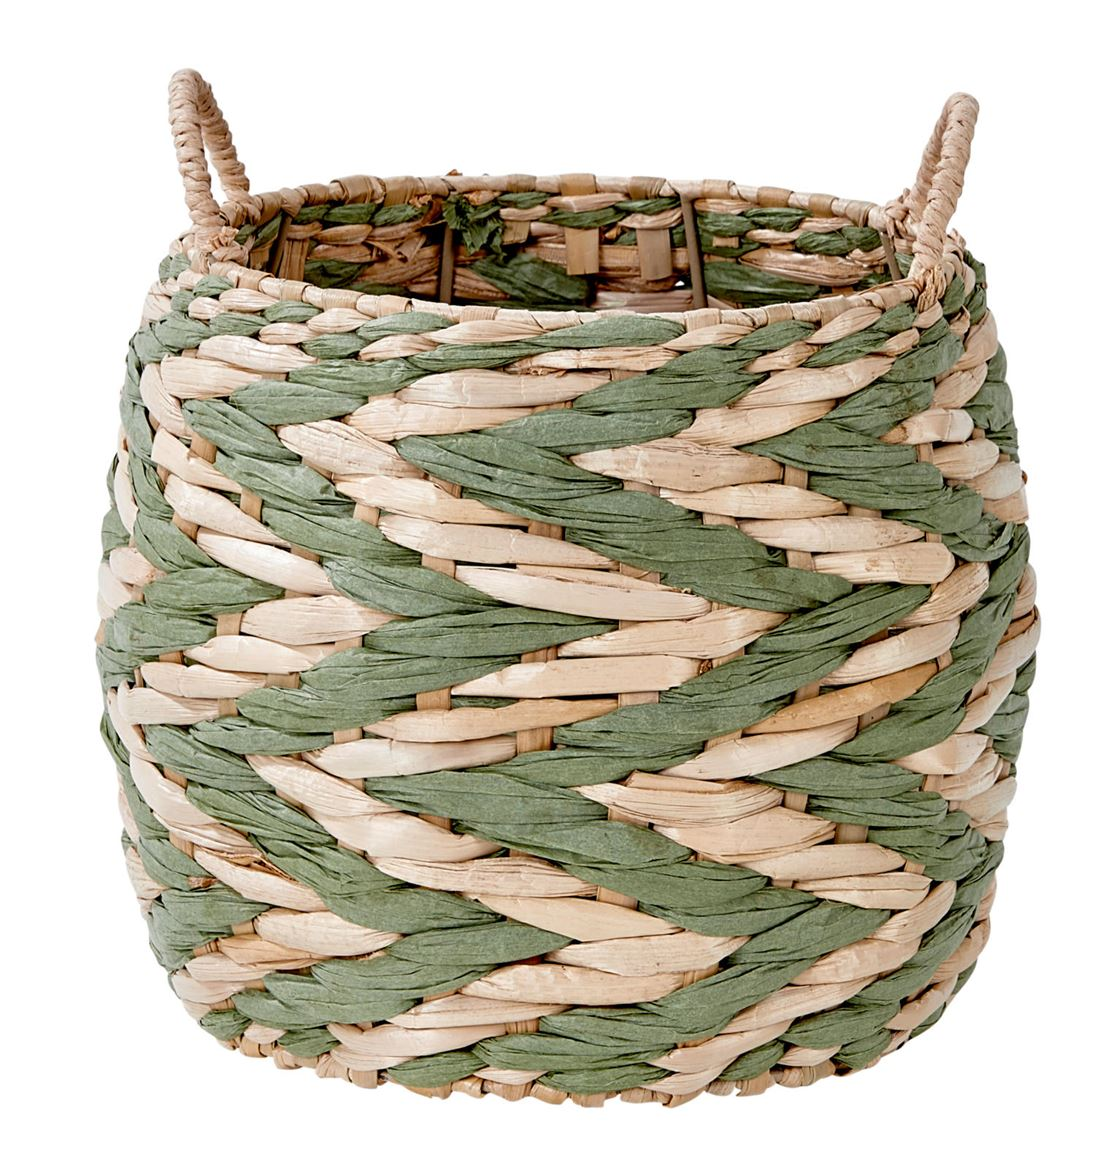 INDIAN GREEN Cesta verde, natural A 19 cm; Ø 23 cm_indian-green-cesta-verde,-natural-a-19-cm;-ø-23-cm